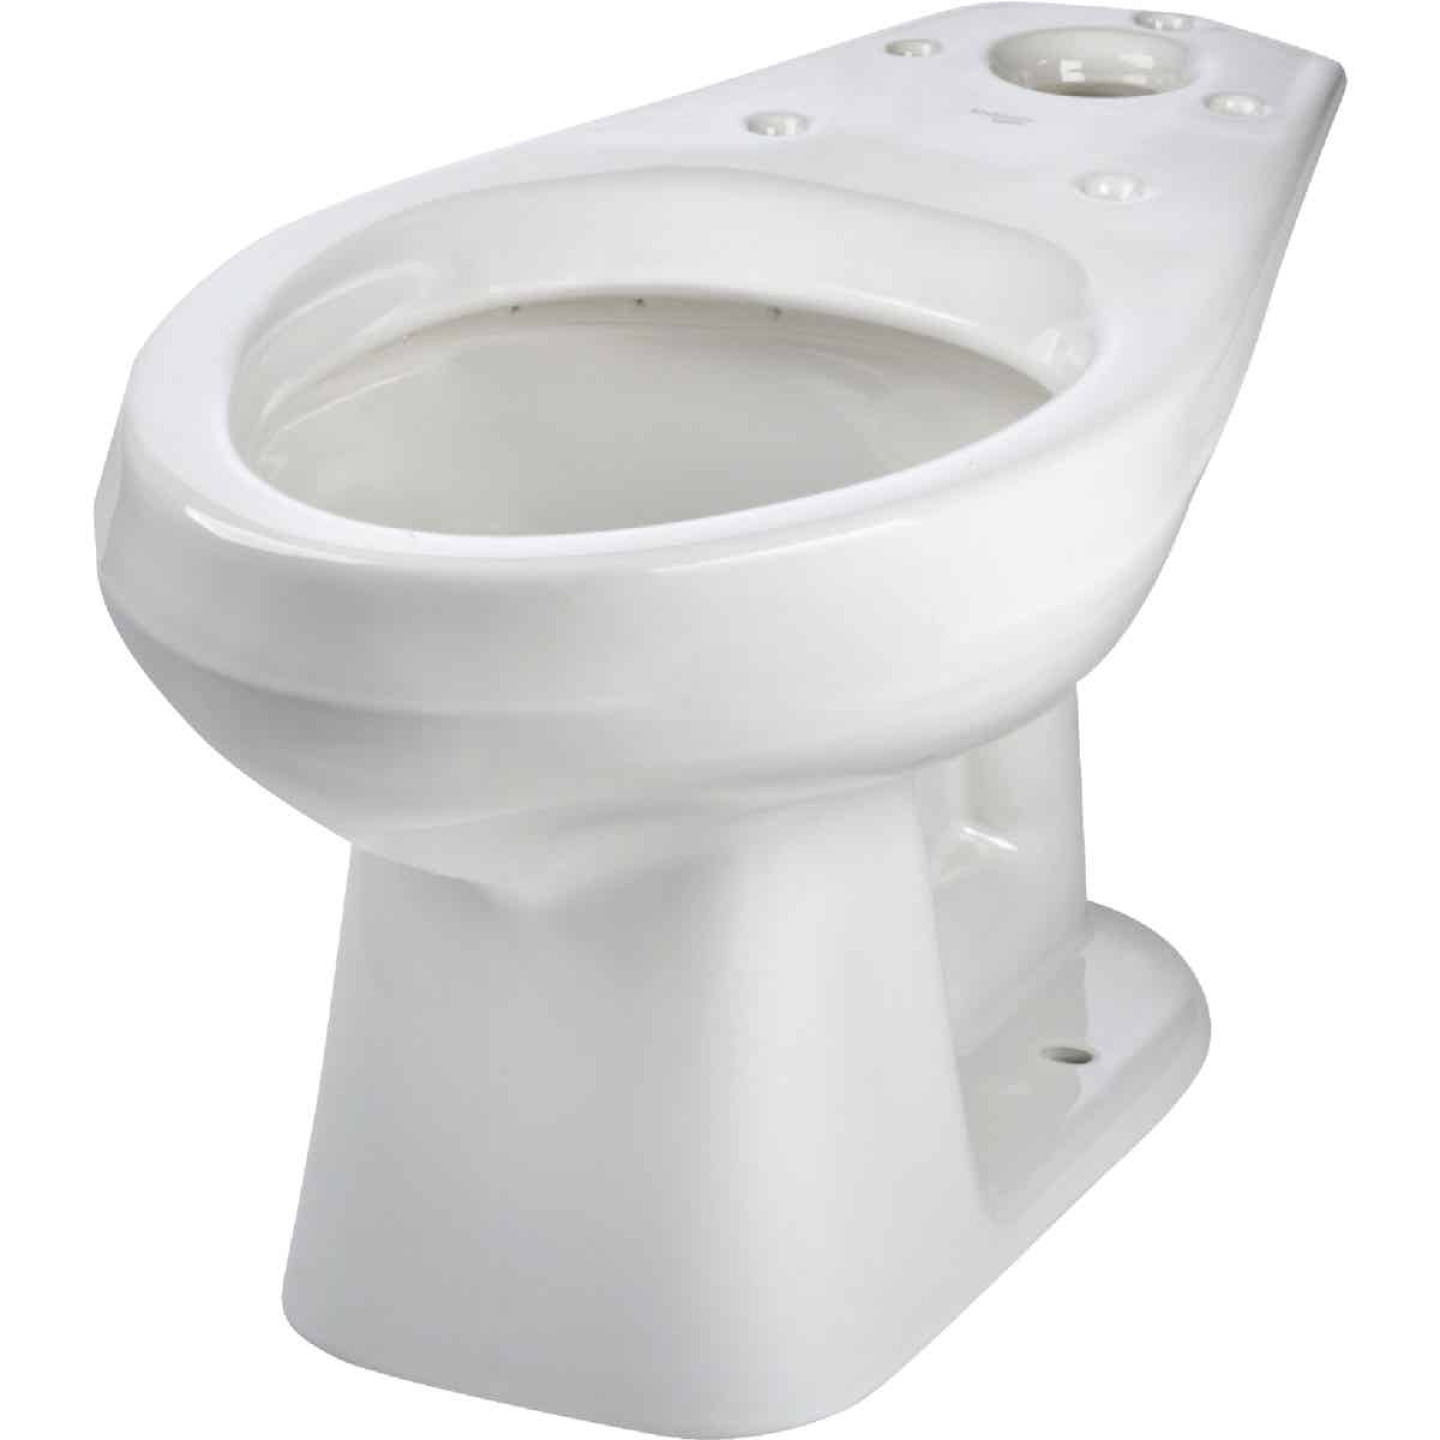 Mansfield Alto White Elongated 14-3/4 In. Toilet Bowl Image 2